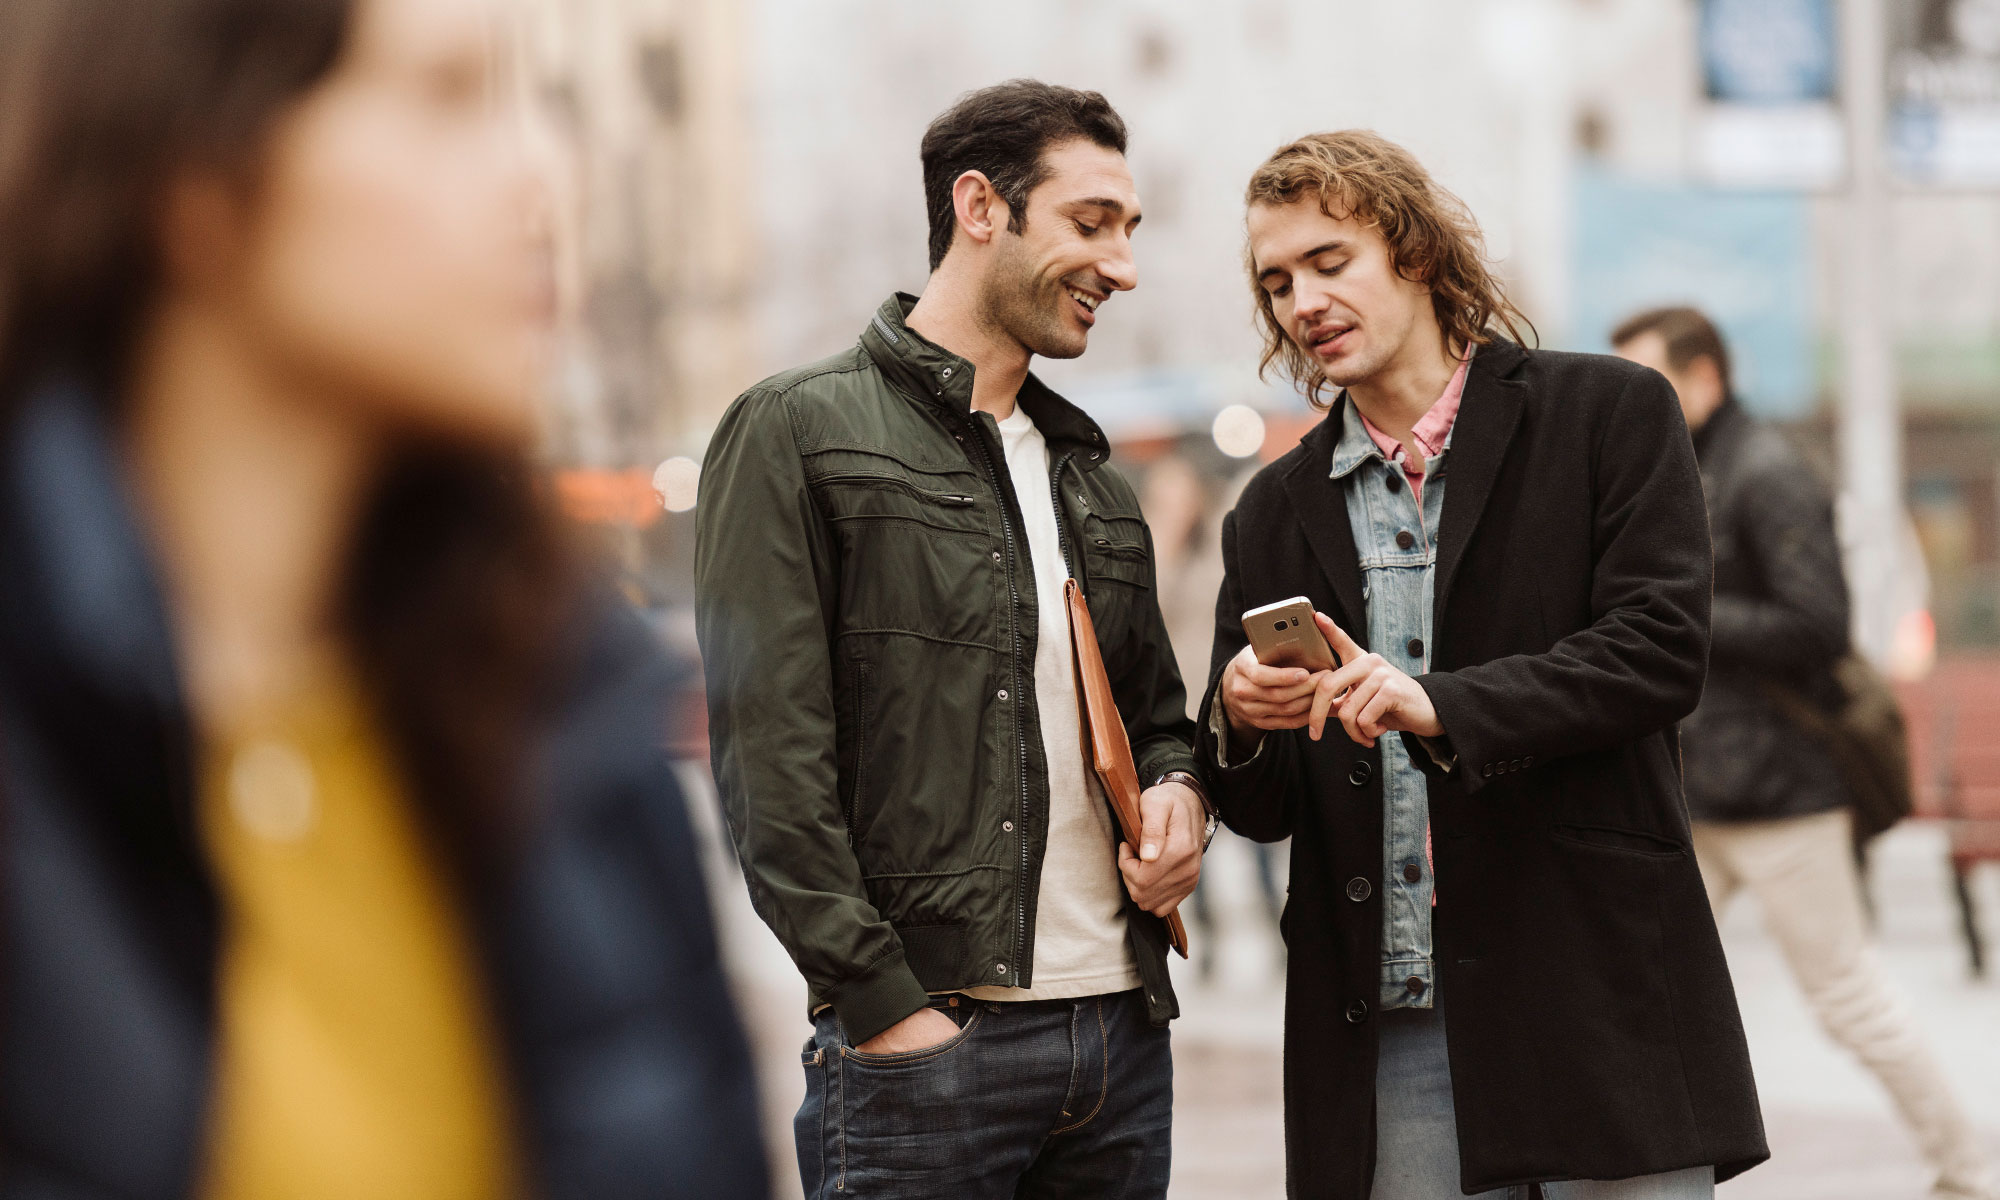 A man showing his friend something on his mobile.